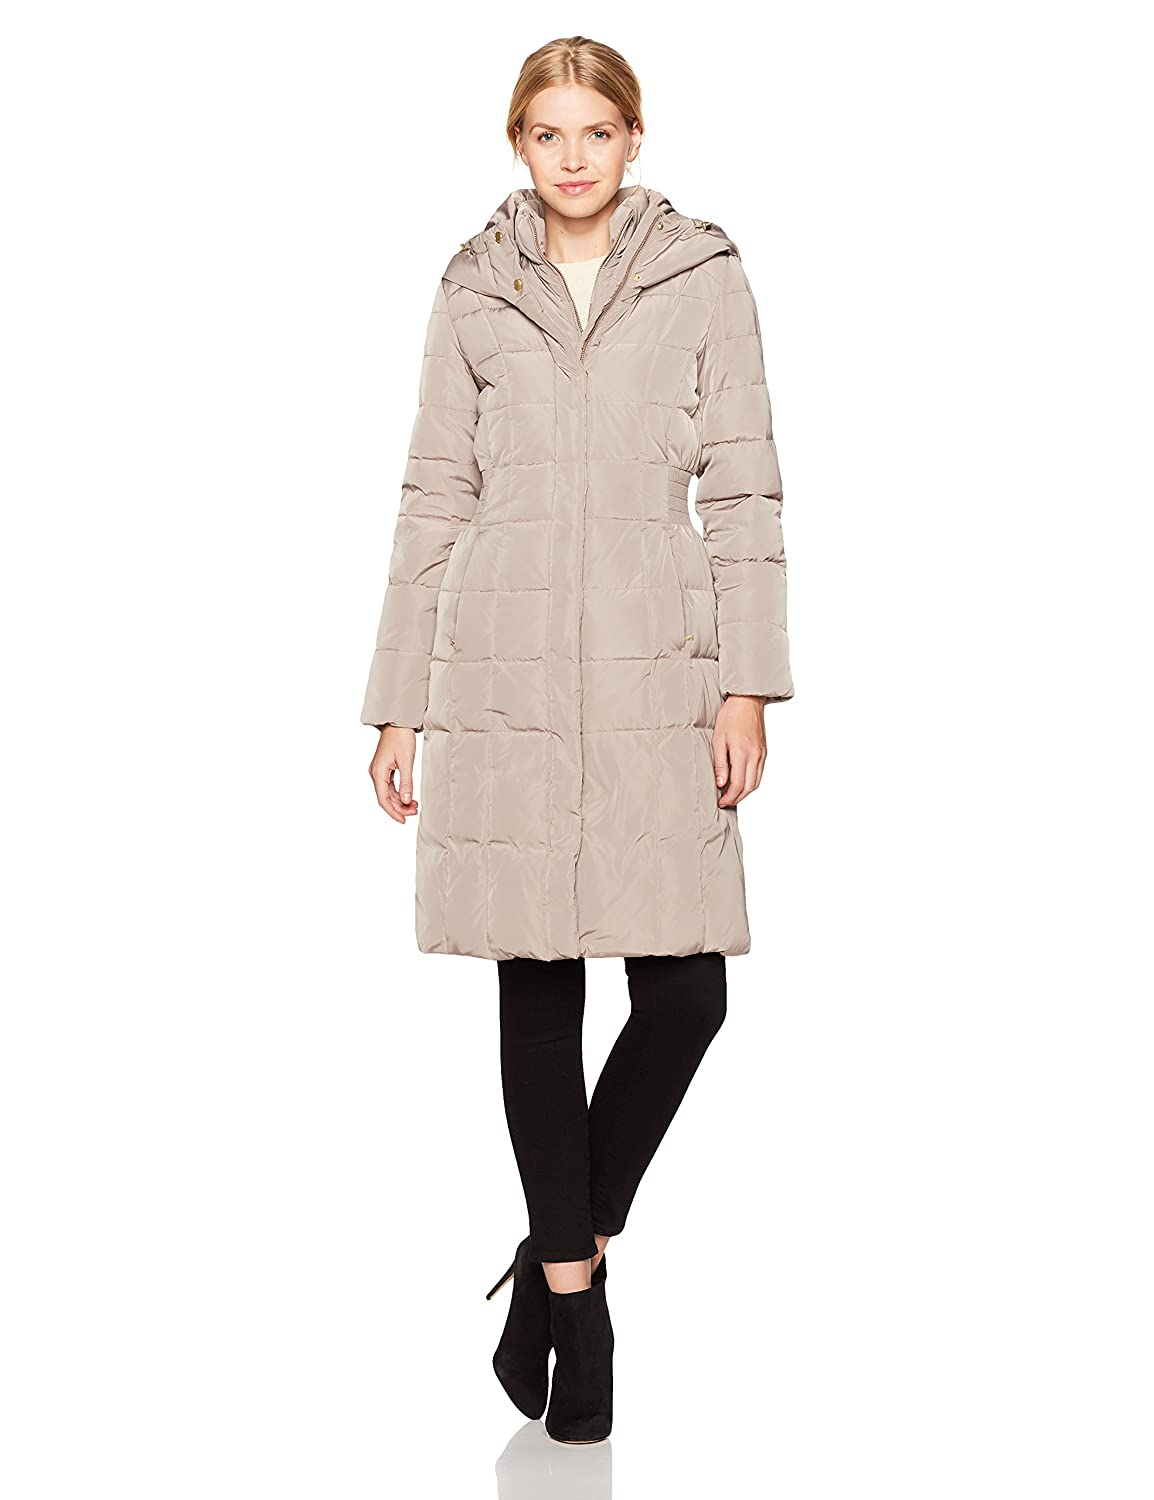 Cole Haan Womens Taffeta Quilted Down Coat Elasticated Side Waist Detail Cole Haan Women' s Outerwear 356SD700